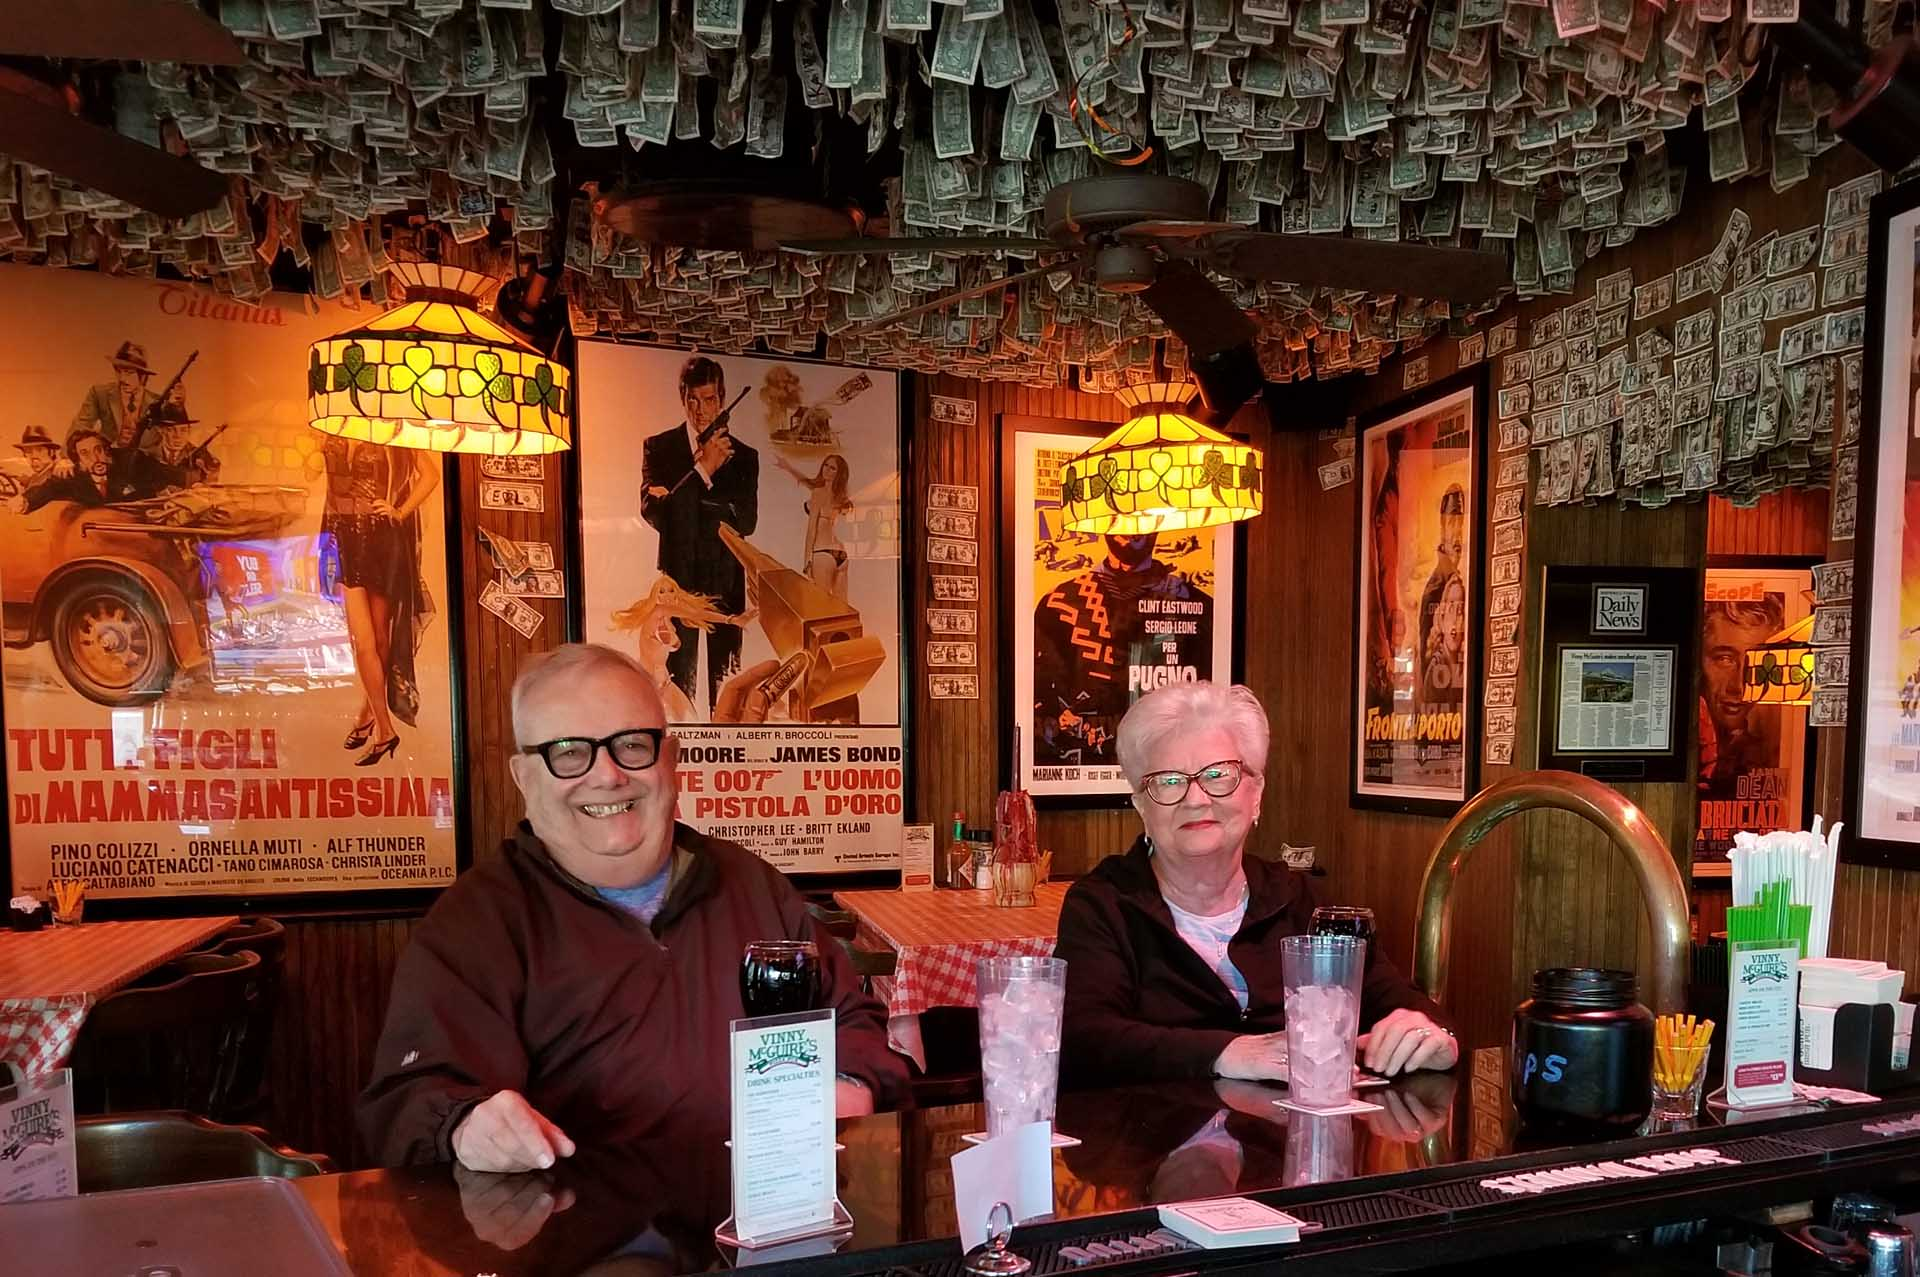 husband and wife seniors sitting at the bar smiling